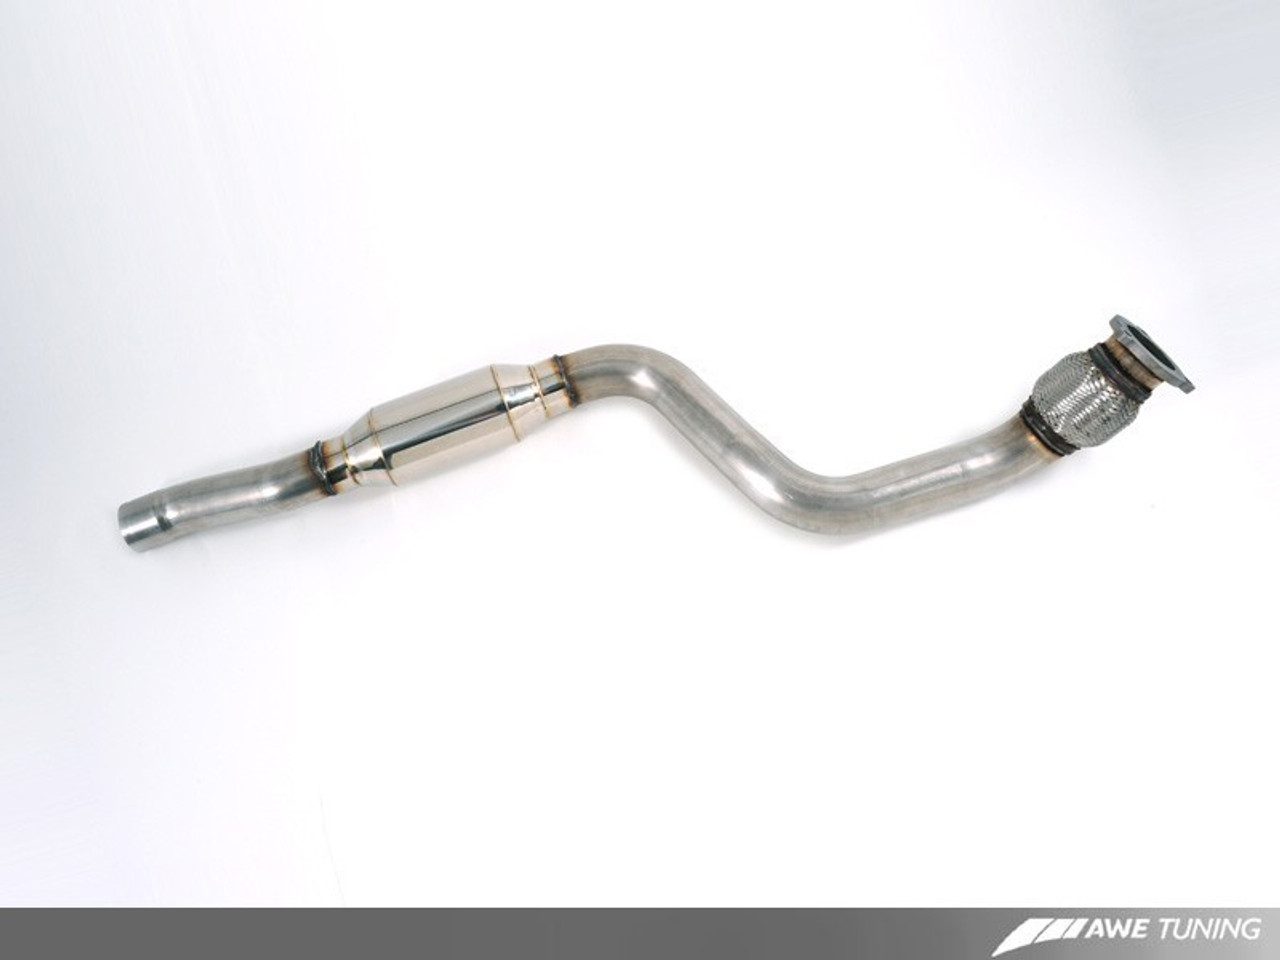 AWE Tuning Resonated Performance Downpipe For Audi B8 / B8.5 2.0t